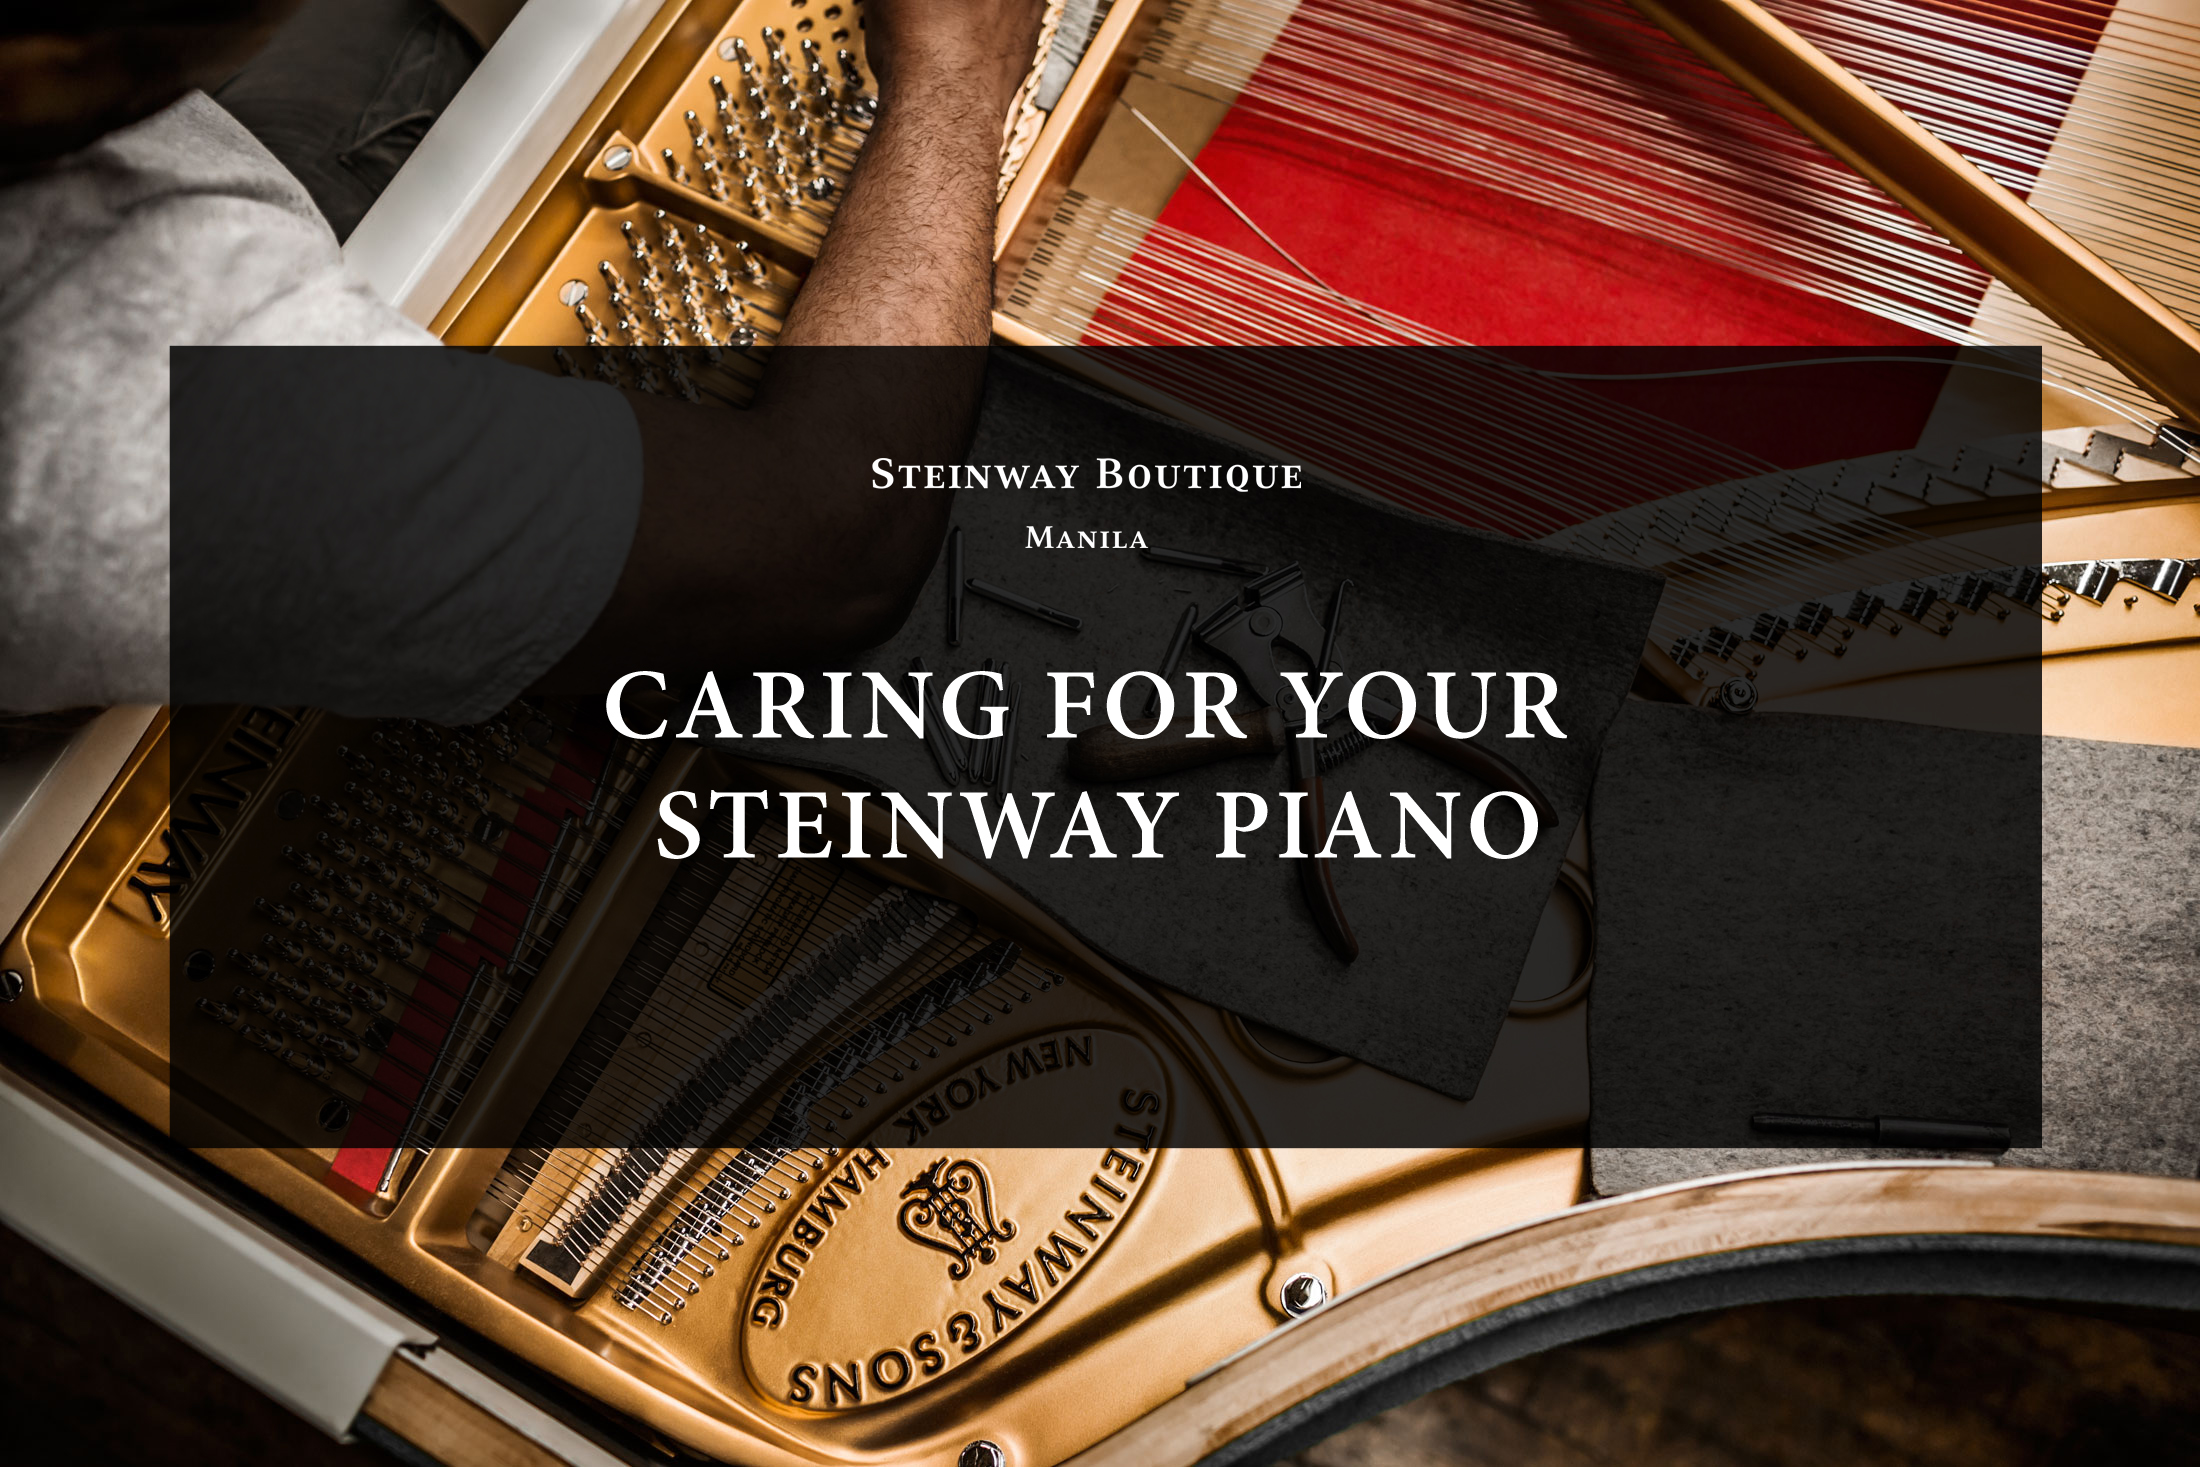 Caring for your Steinway